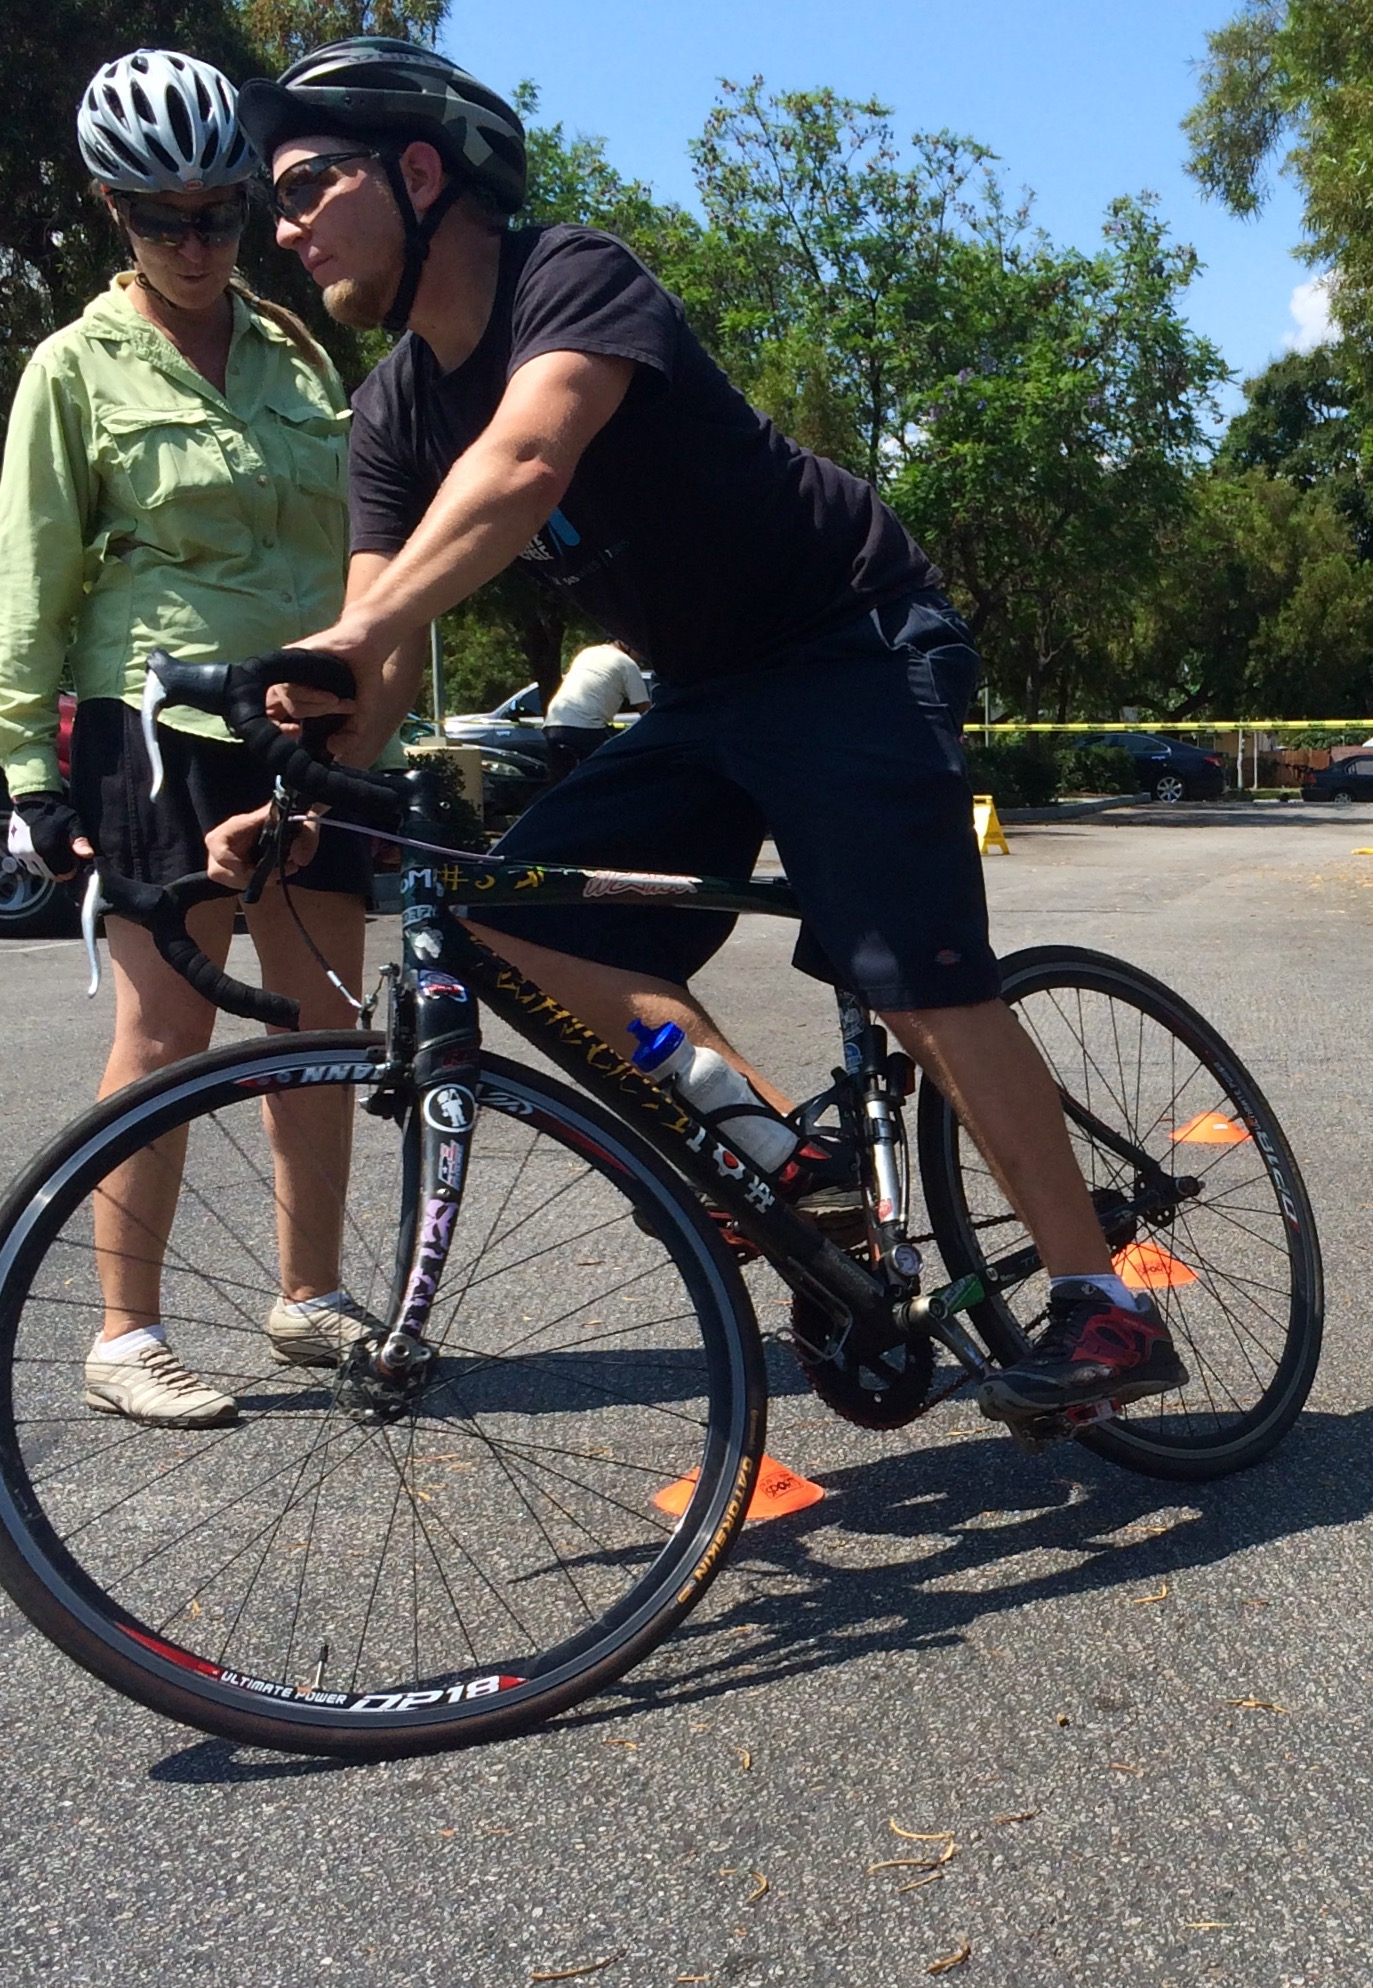 A safety instructor teaches bicycle maneuvering skills on road course.